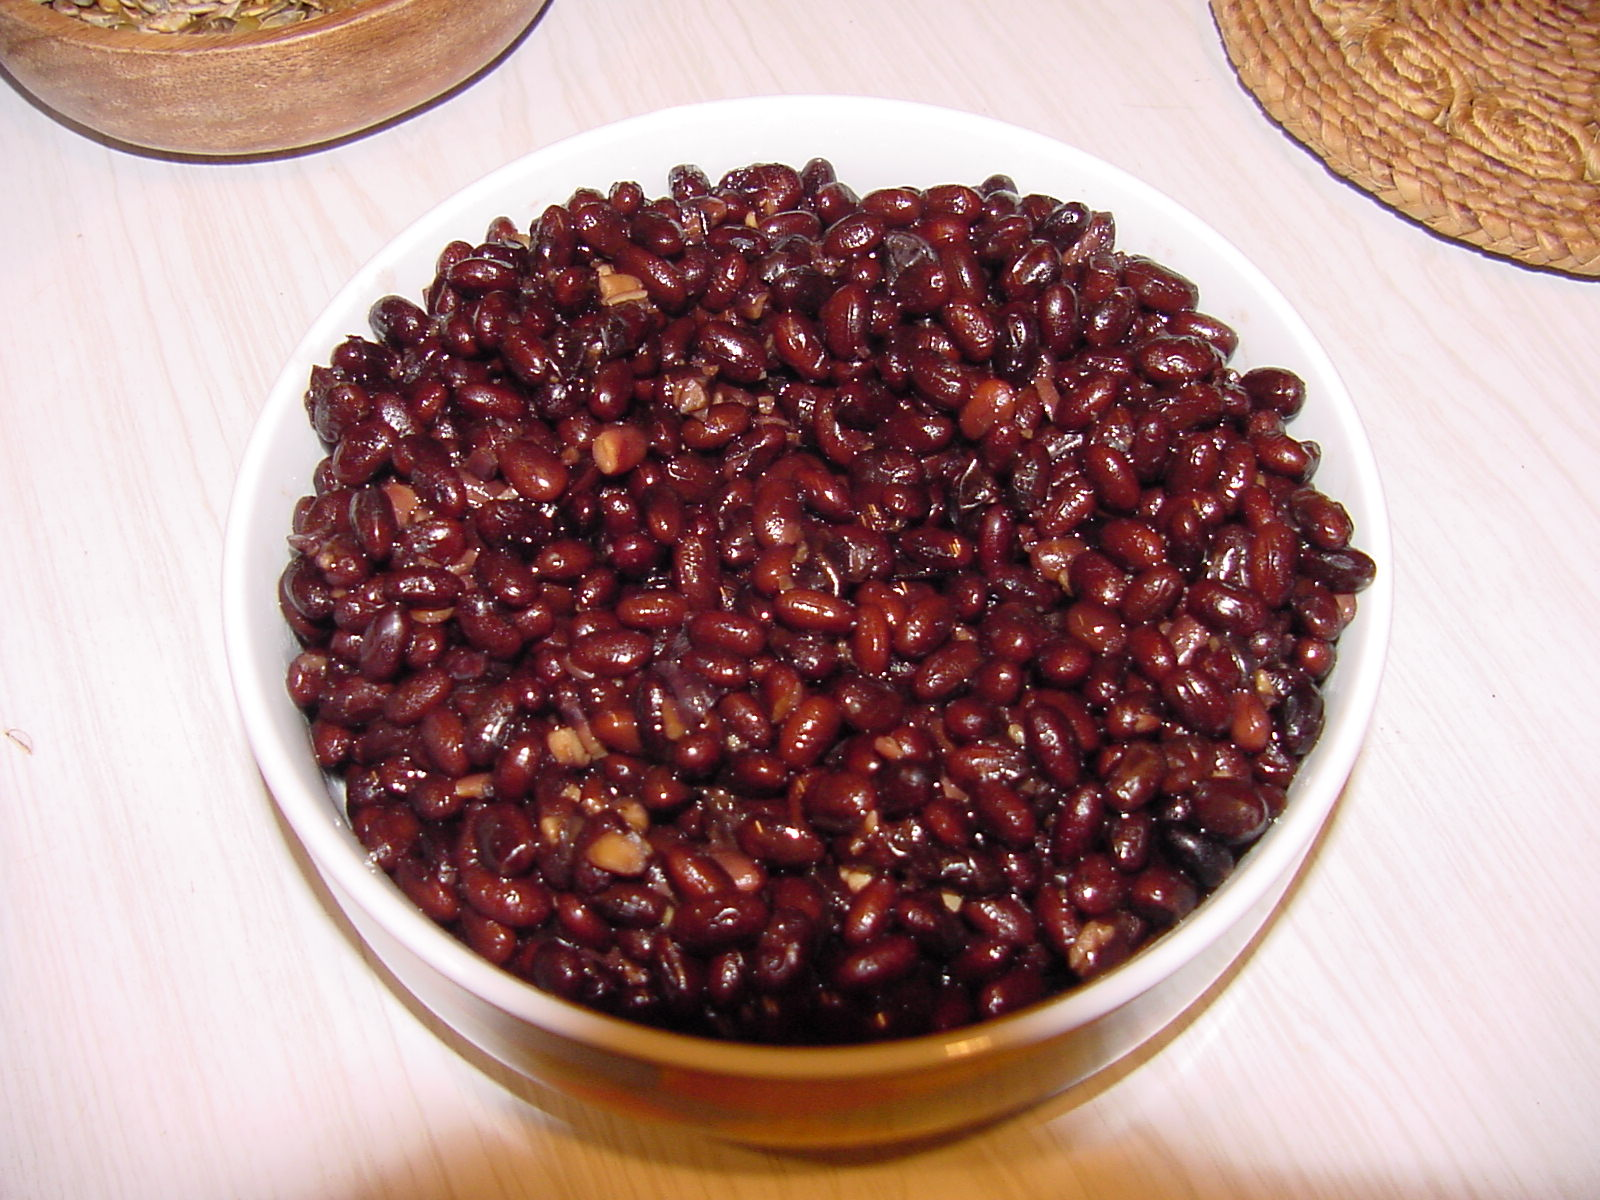 Bowl of Black Soy Beans